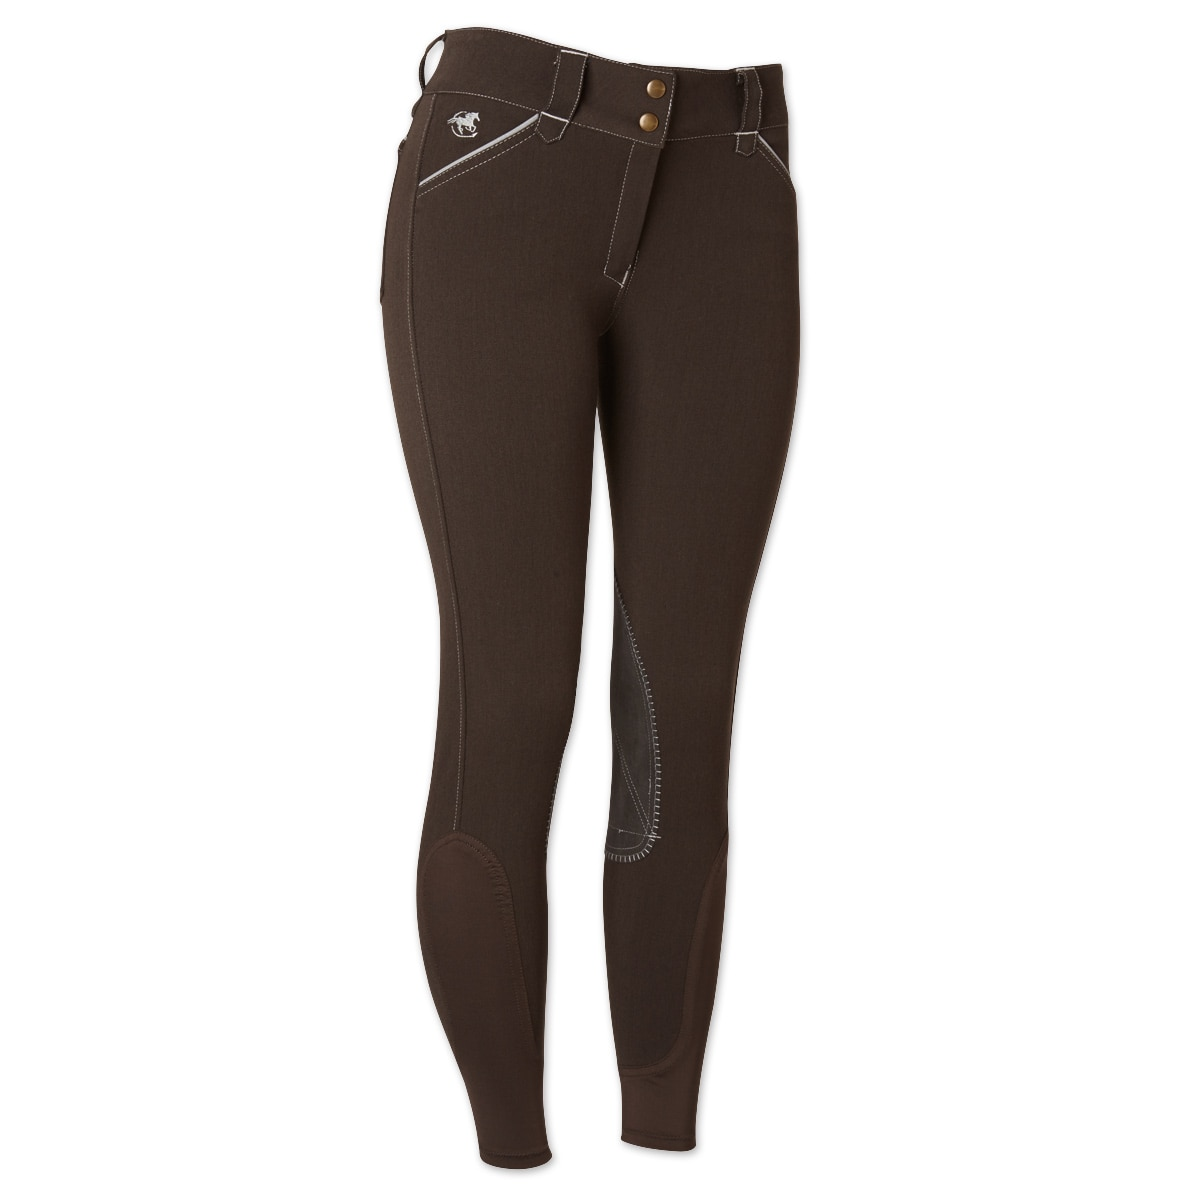 Piper Breeches by SmartPak - Original Knee Patch- Clearance!